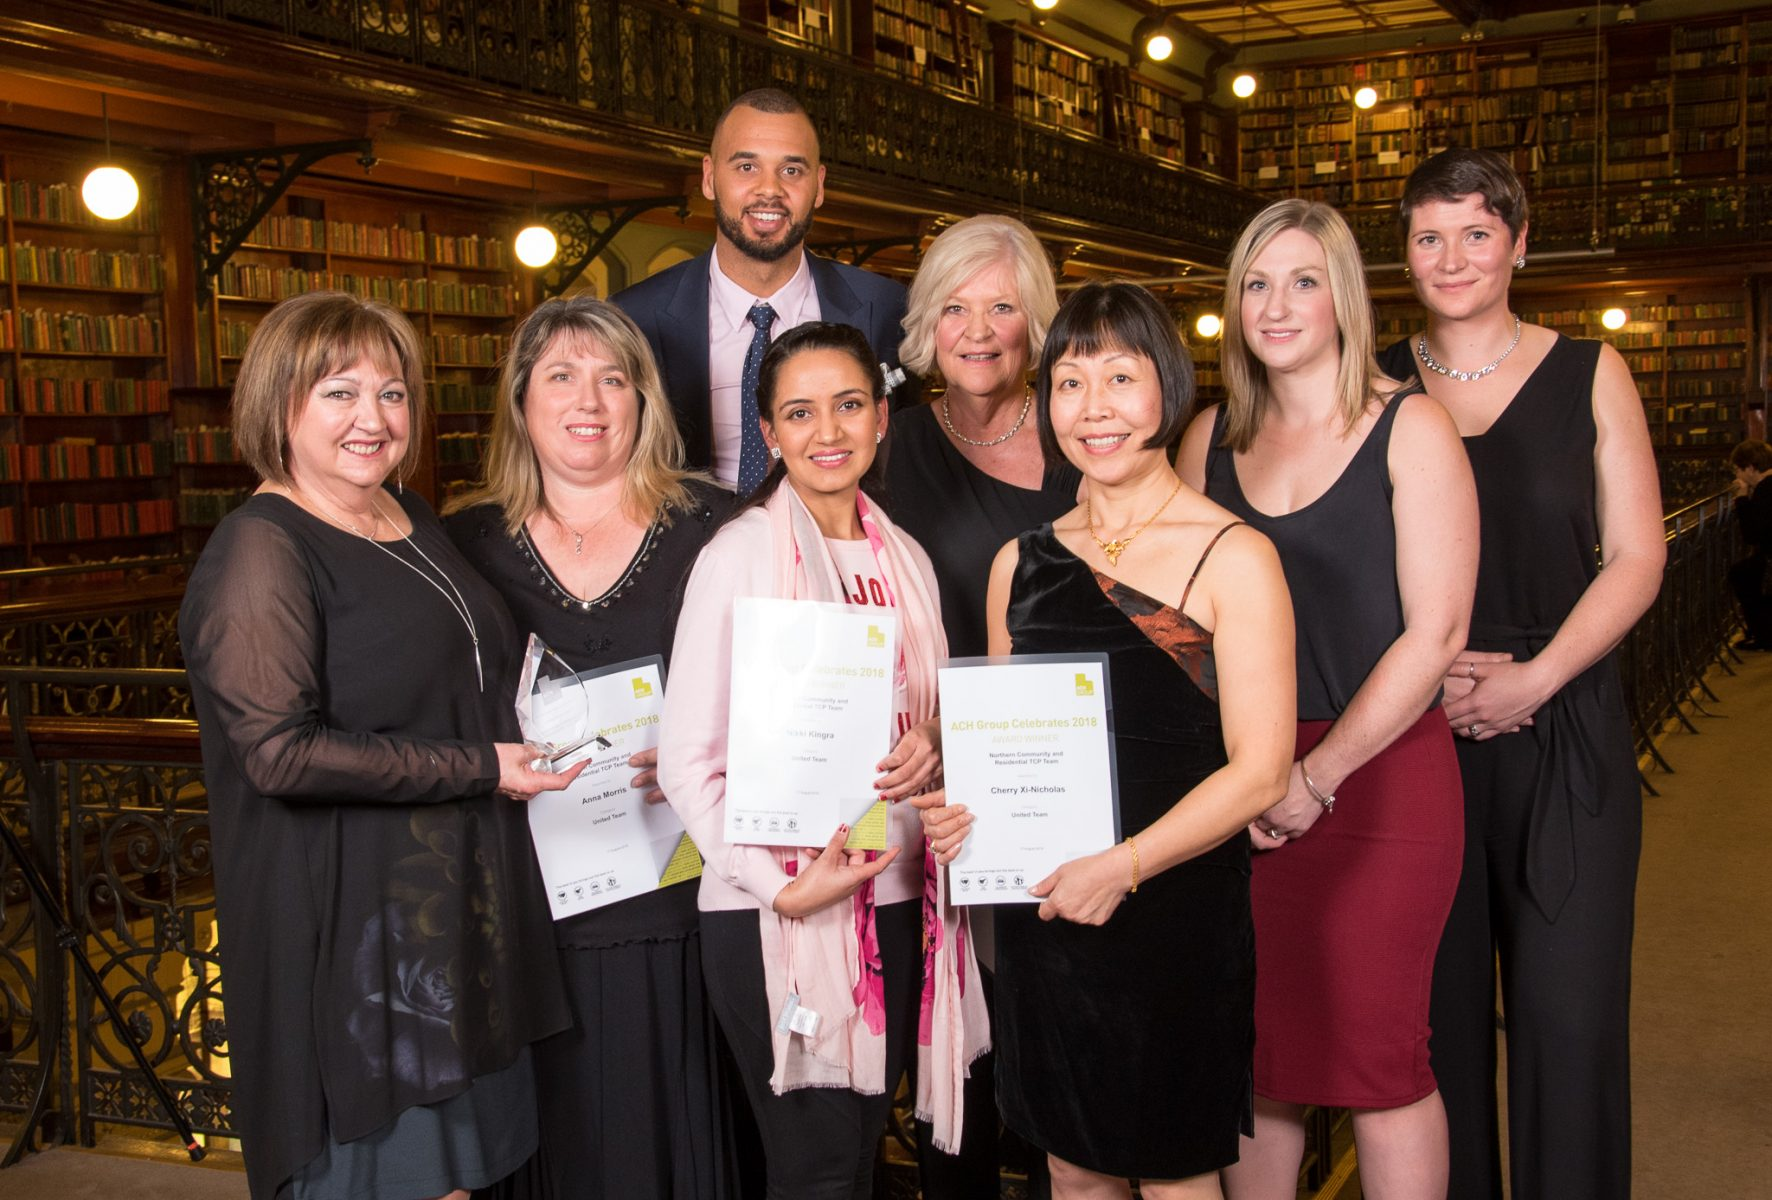 attendees and award recipients at the ACH Group awards night